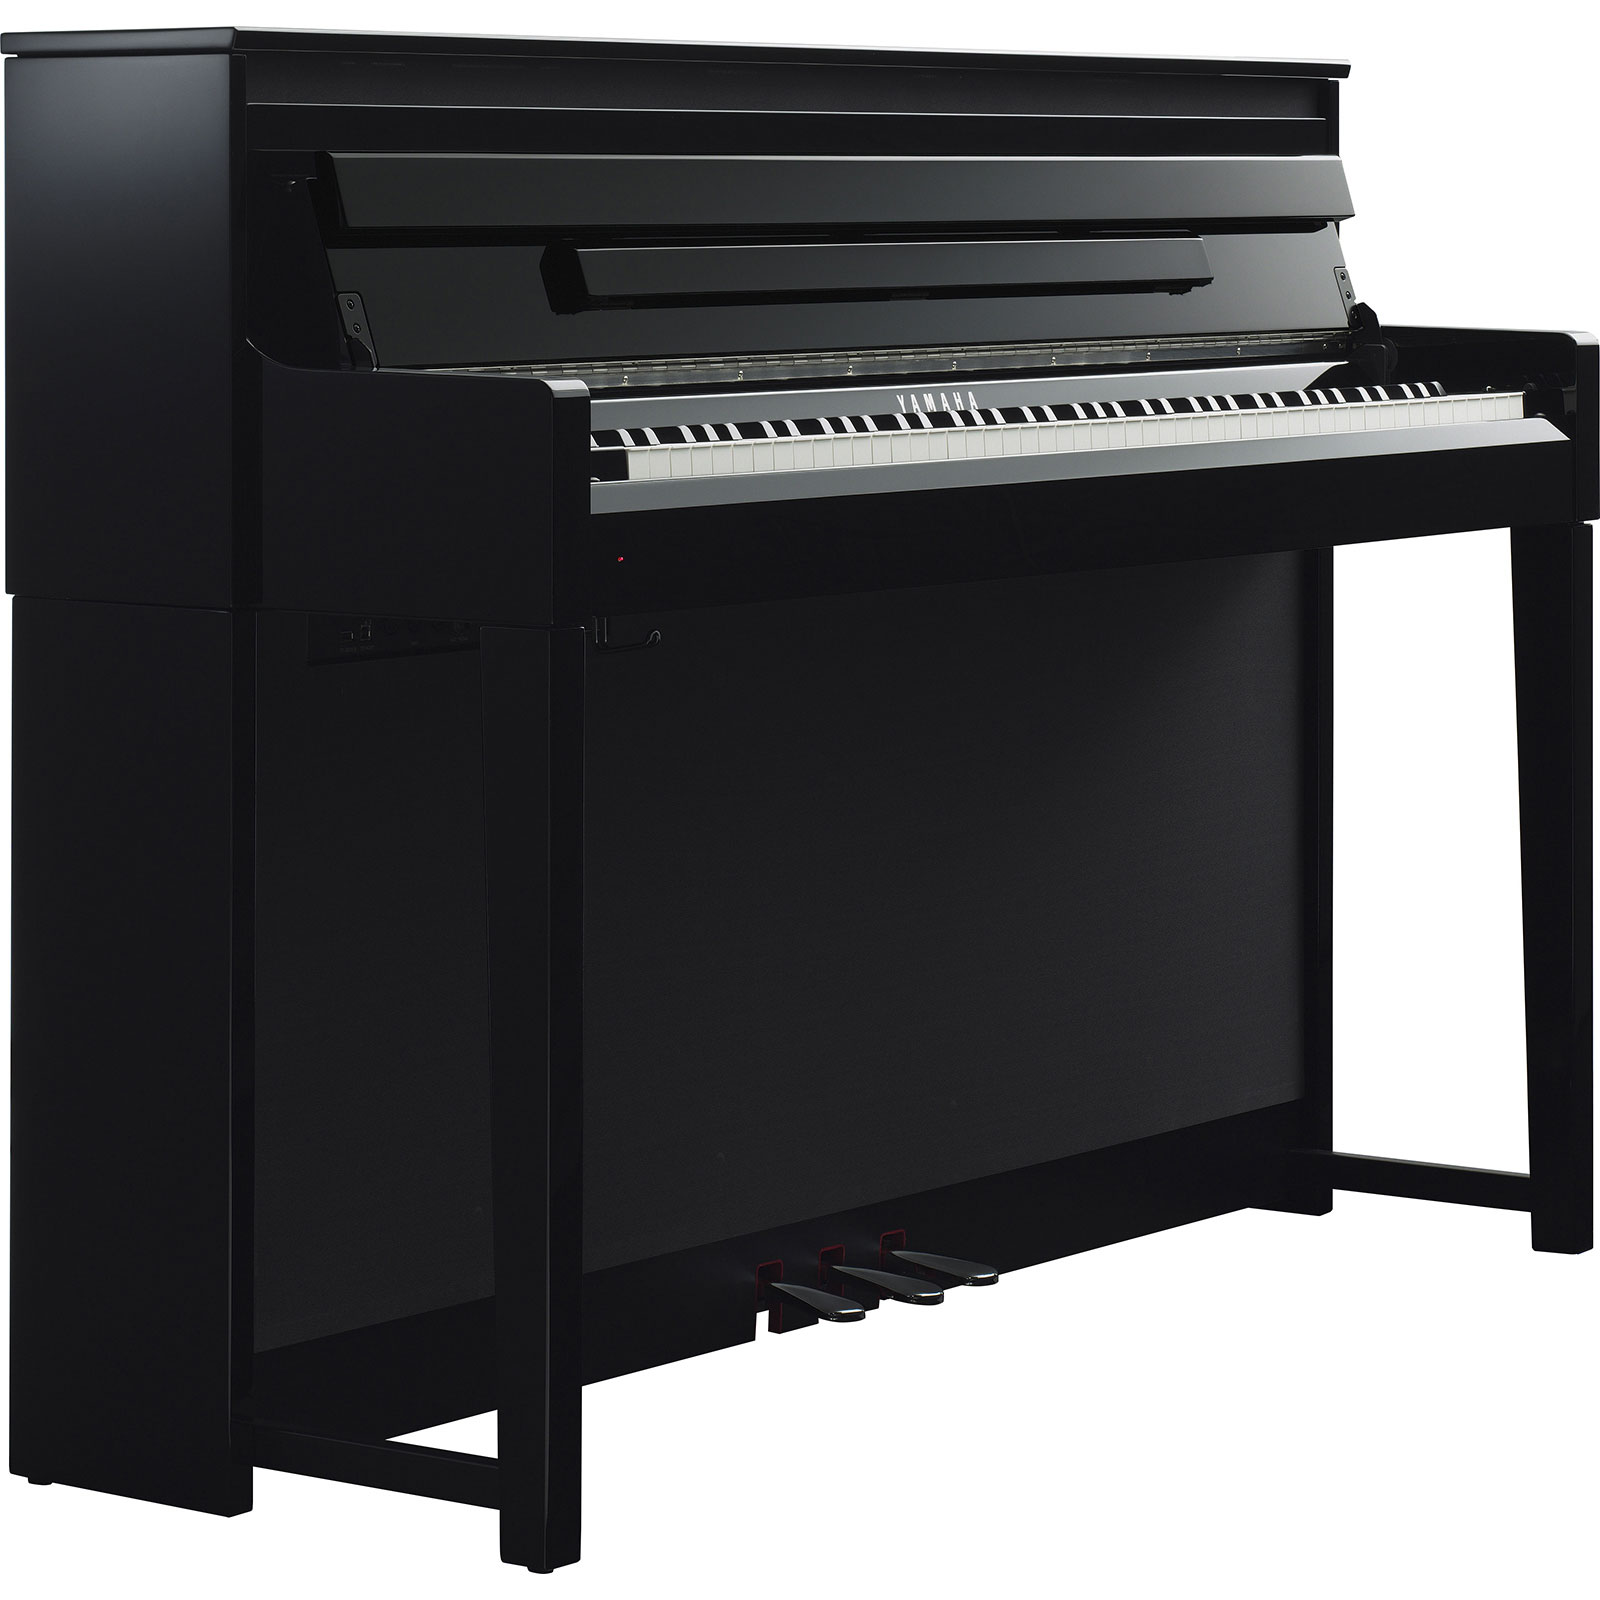 clp 585 absolute pianoabsolute piano. Black Bedroom Furniture Sets. Home Design Ideas